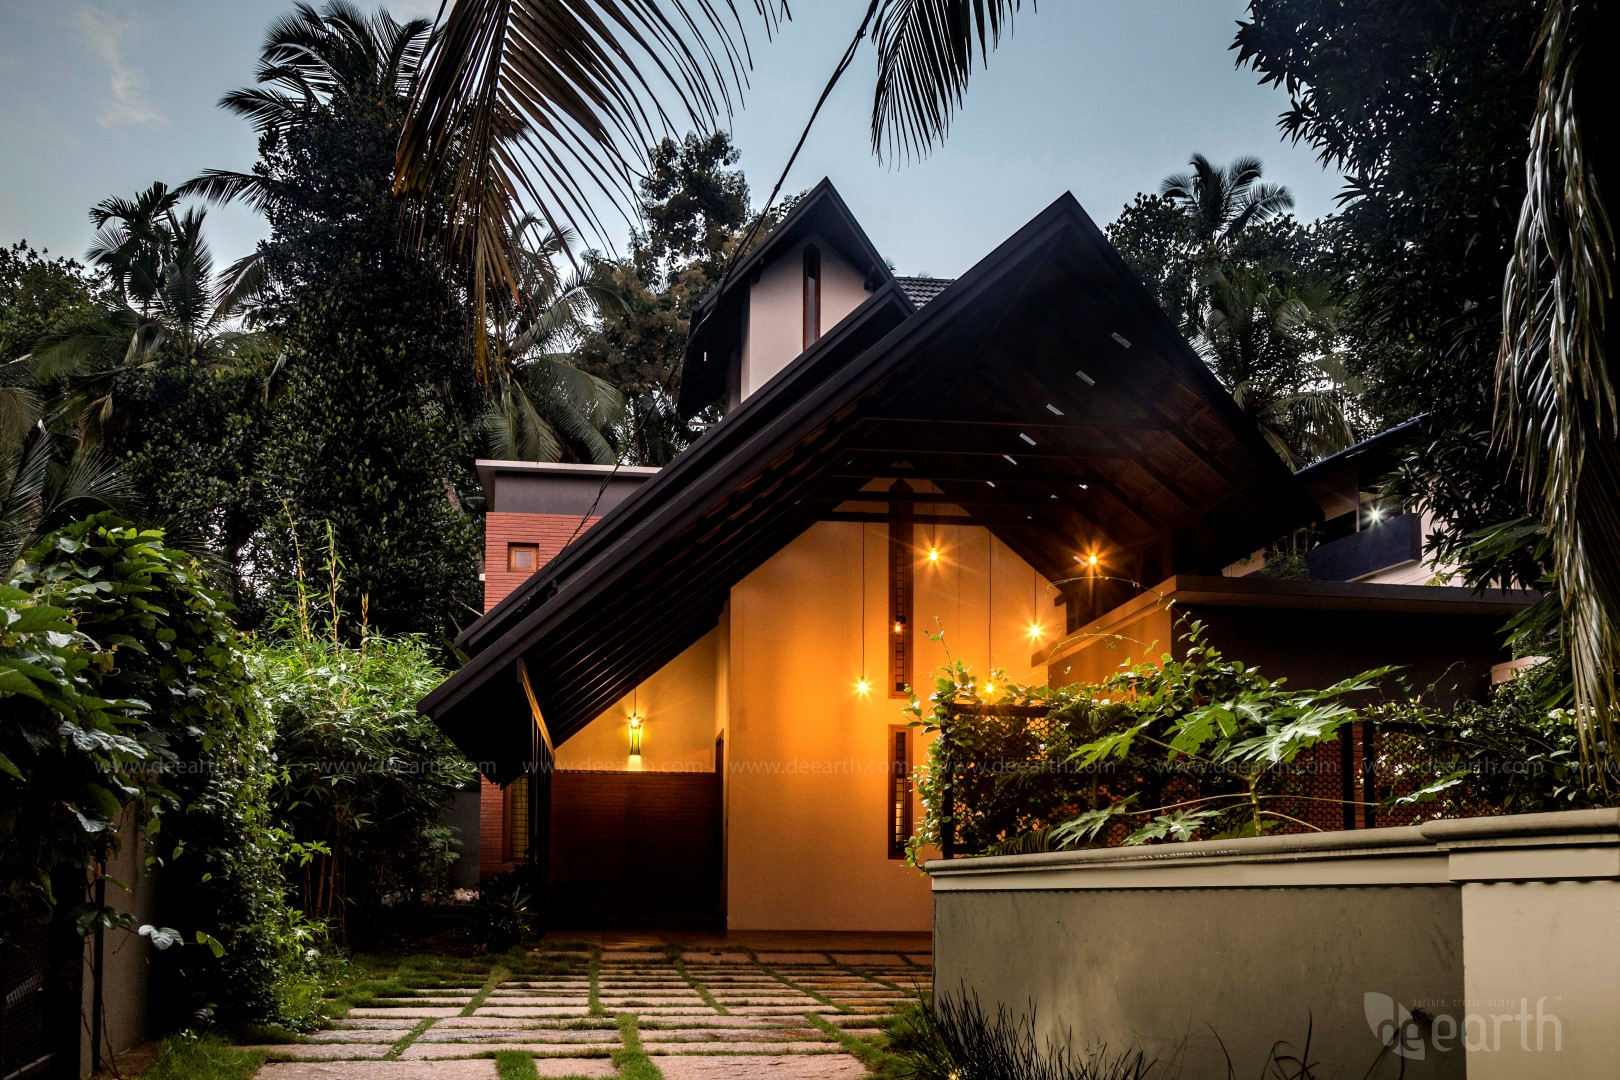 The garden house calicut de earth the architects diary for Best house design hot climate